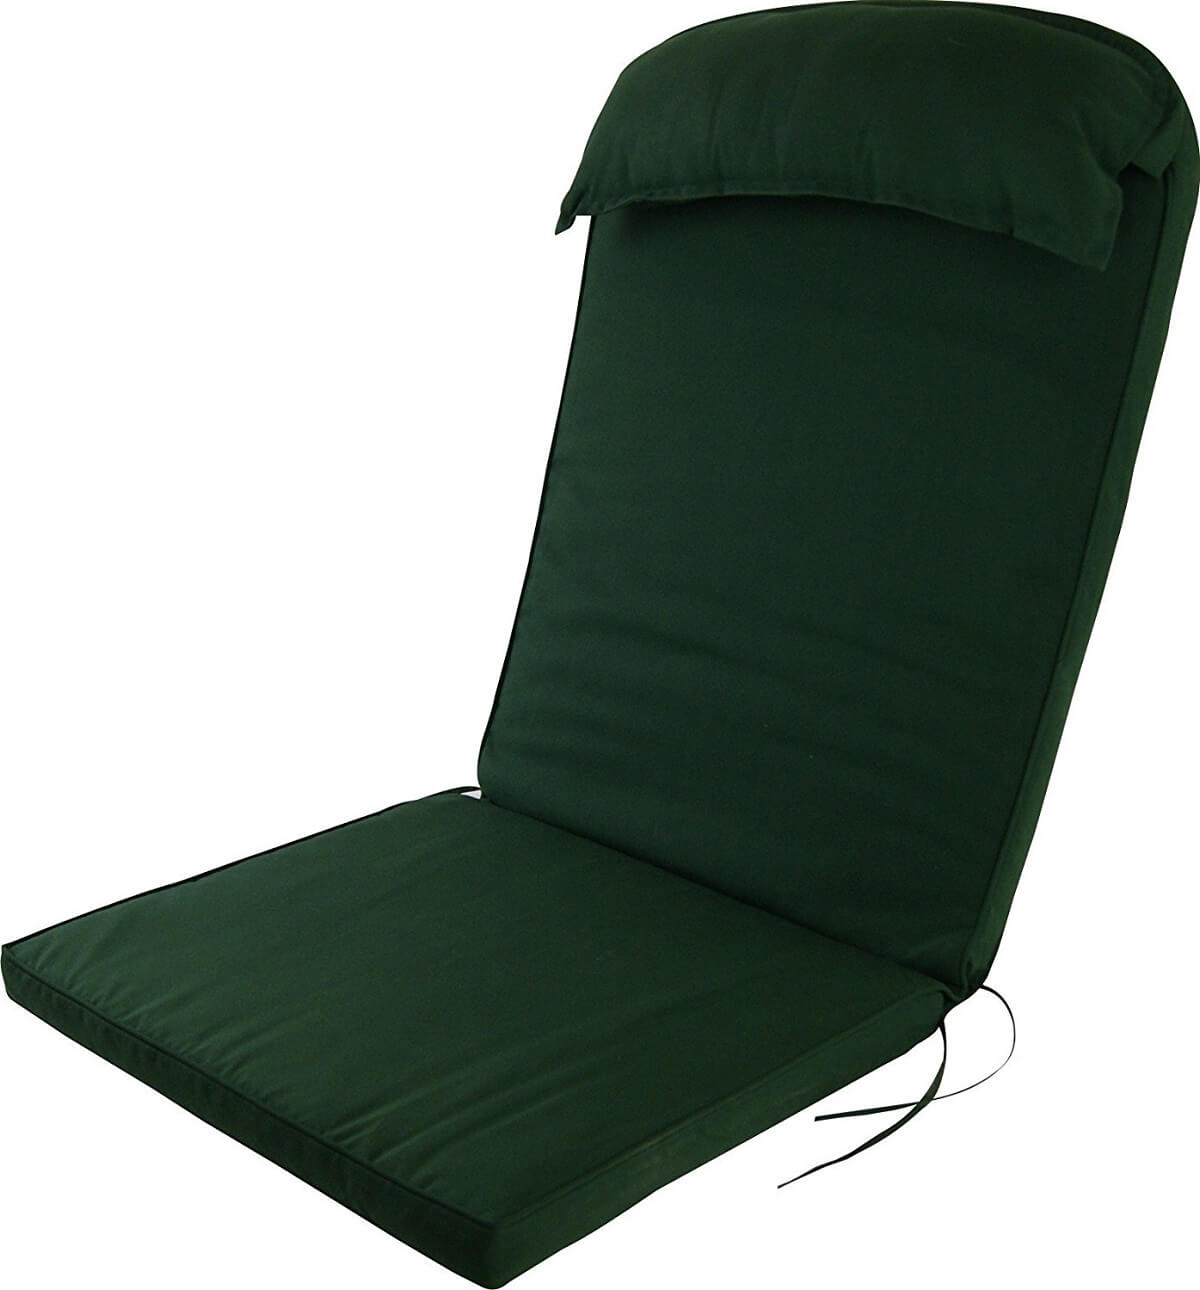 Adirondack Chair Cushion with Pillow